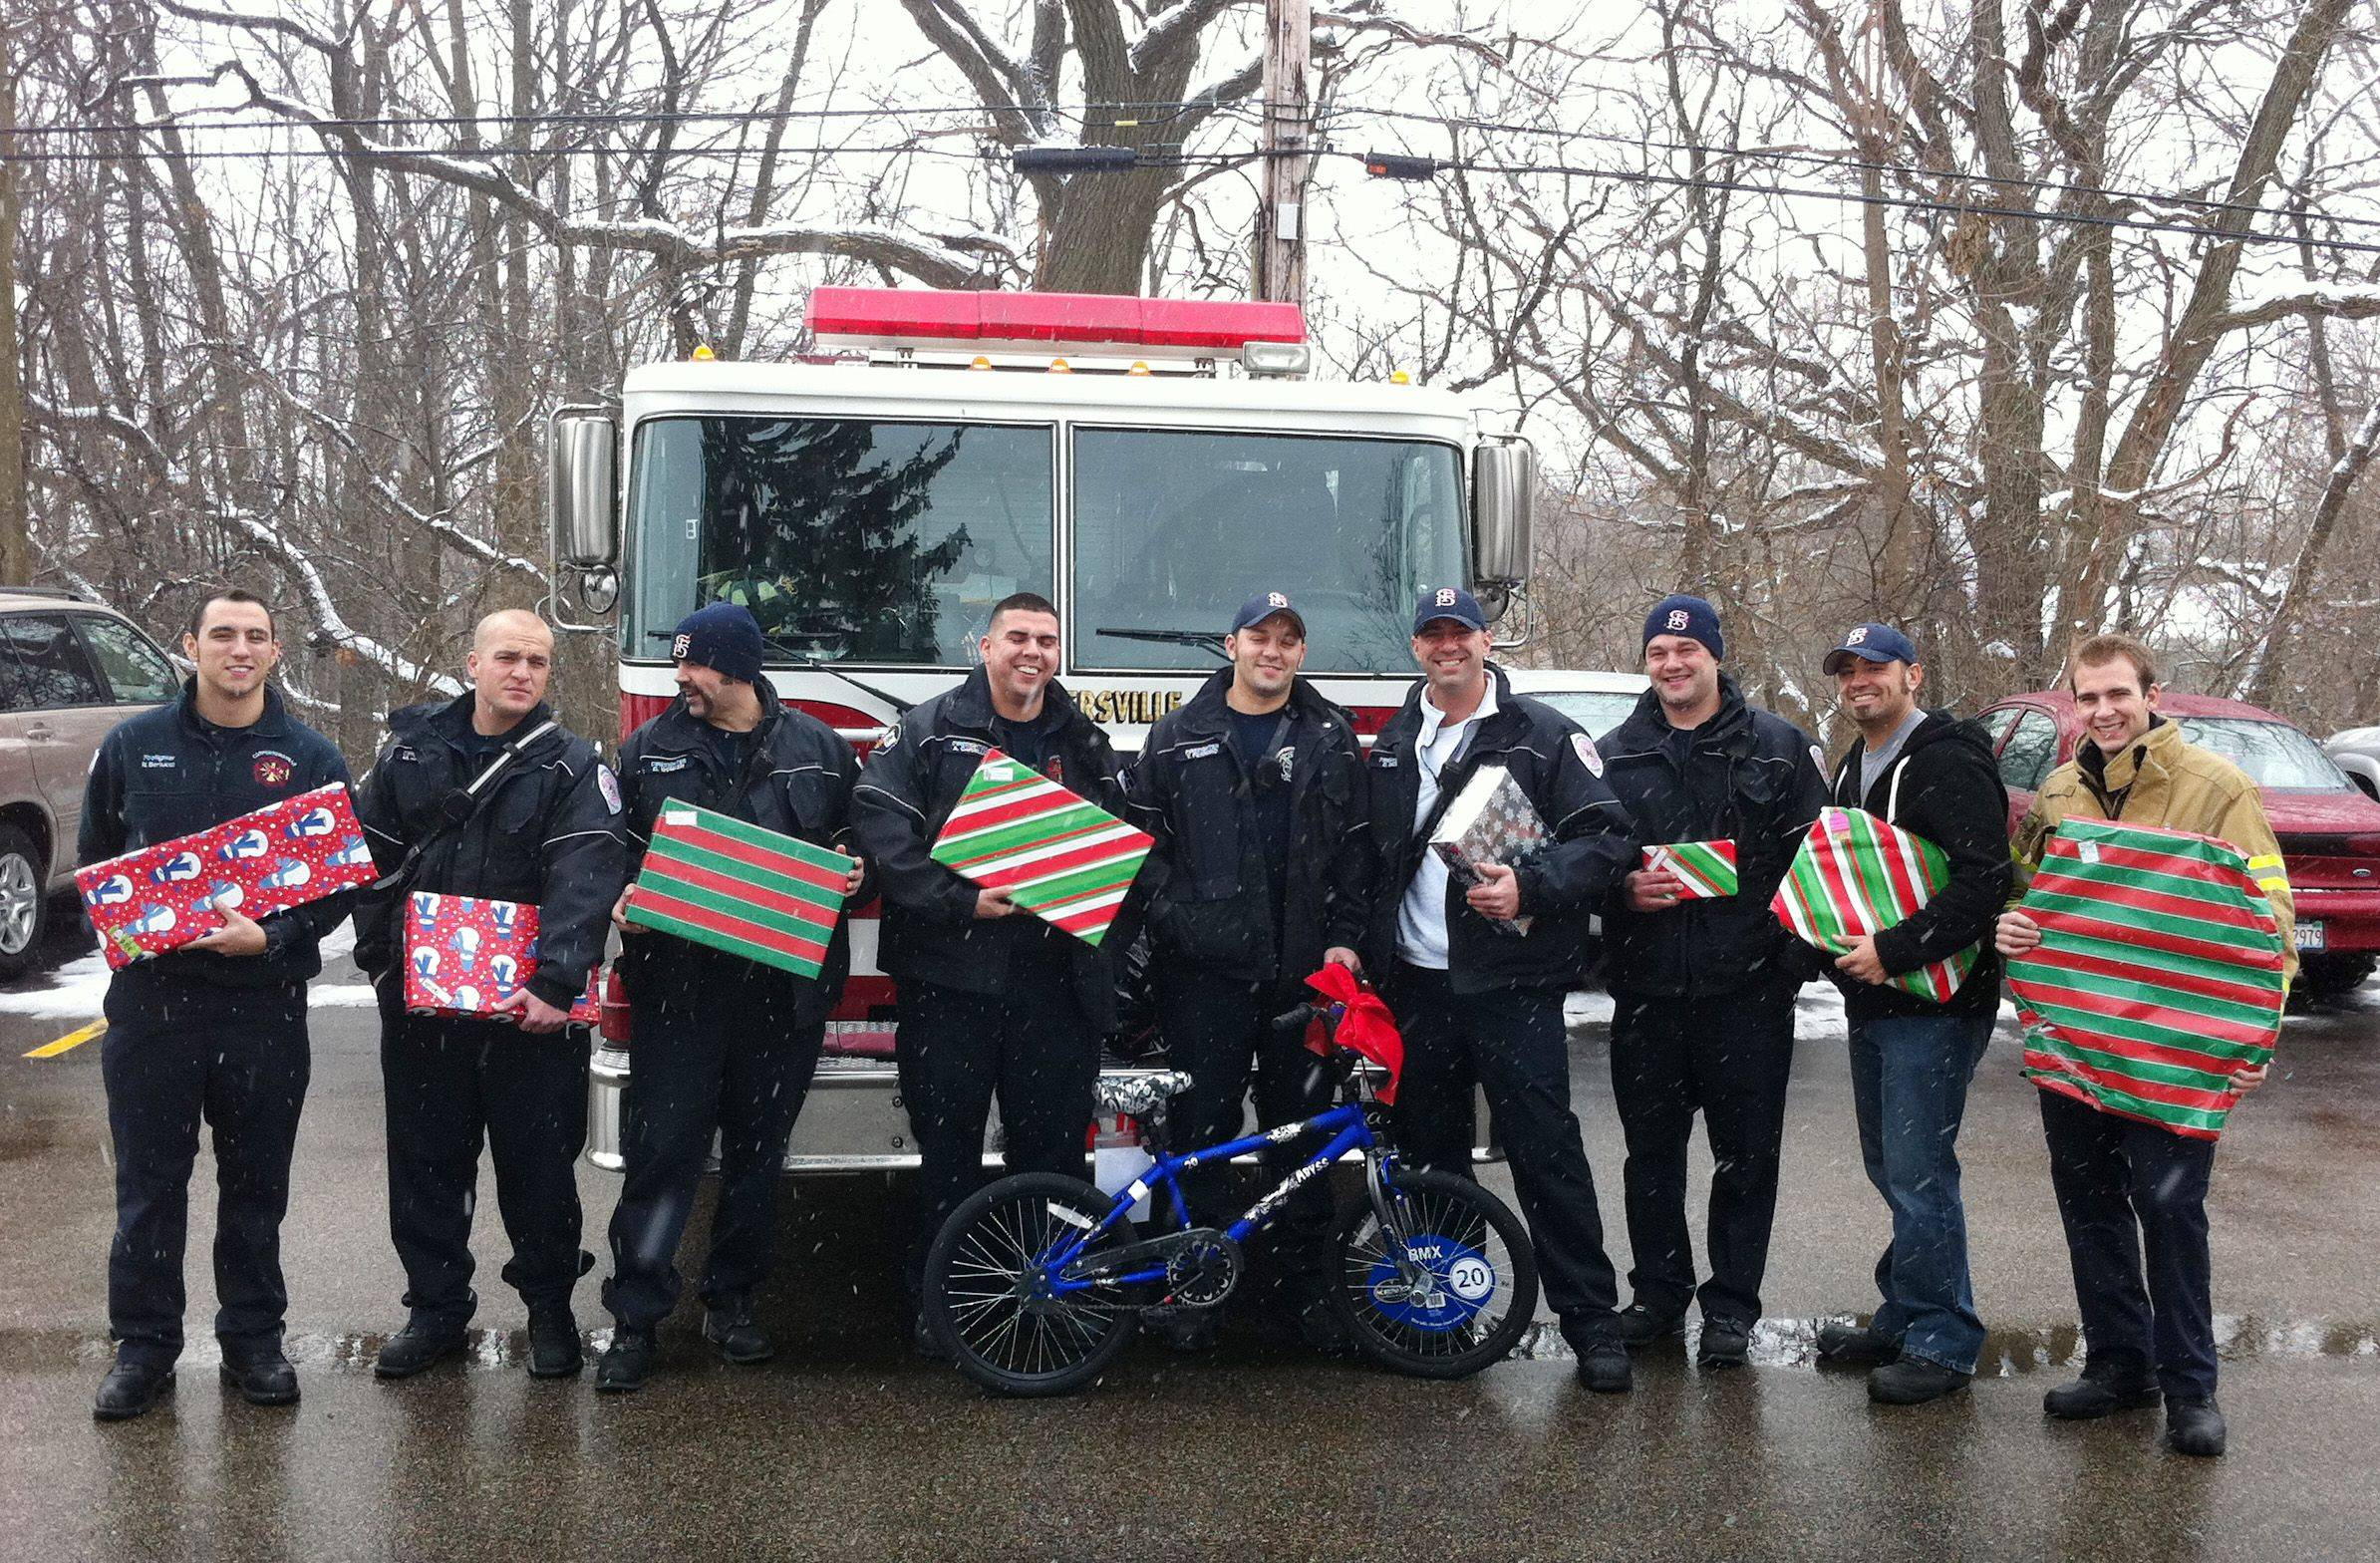 Carpentersville firefighters, from left, Nick Bertucci, Matt Jackson, Brandon Wemken, Art Carrillo, Tony Ferreiro, Brian Berry, Dave Johnson, Doug Miller and Scott Kapocious prepare to hand out Christmas gifts.